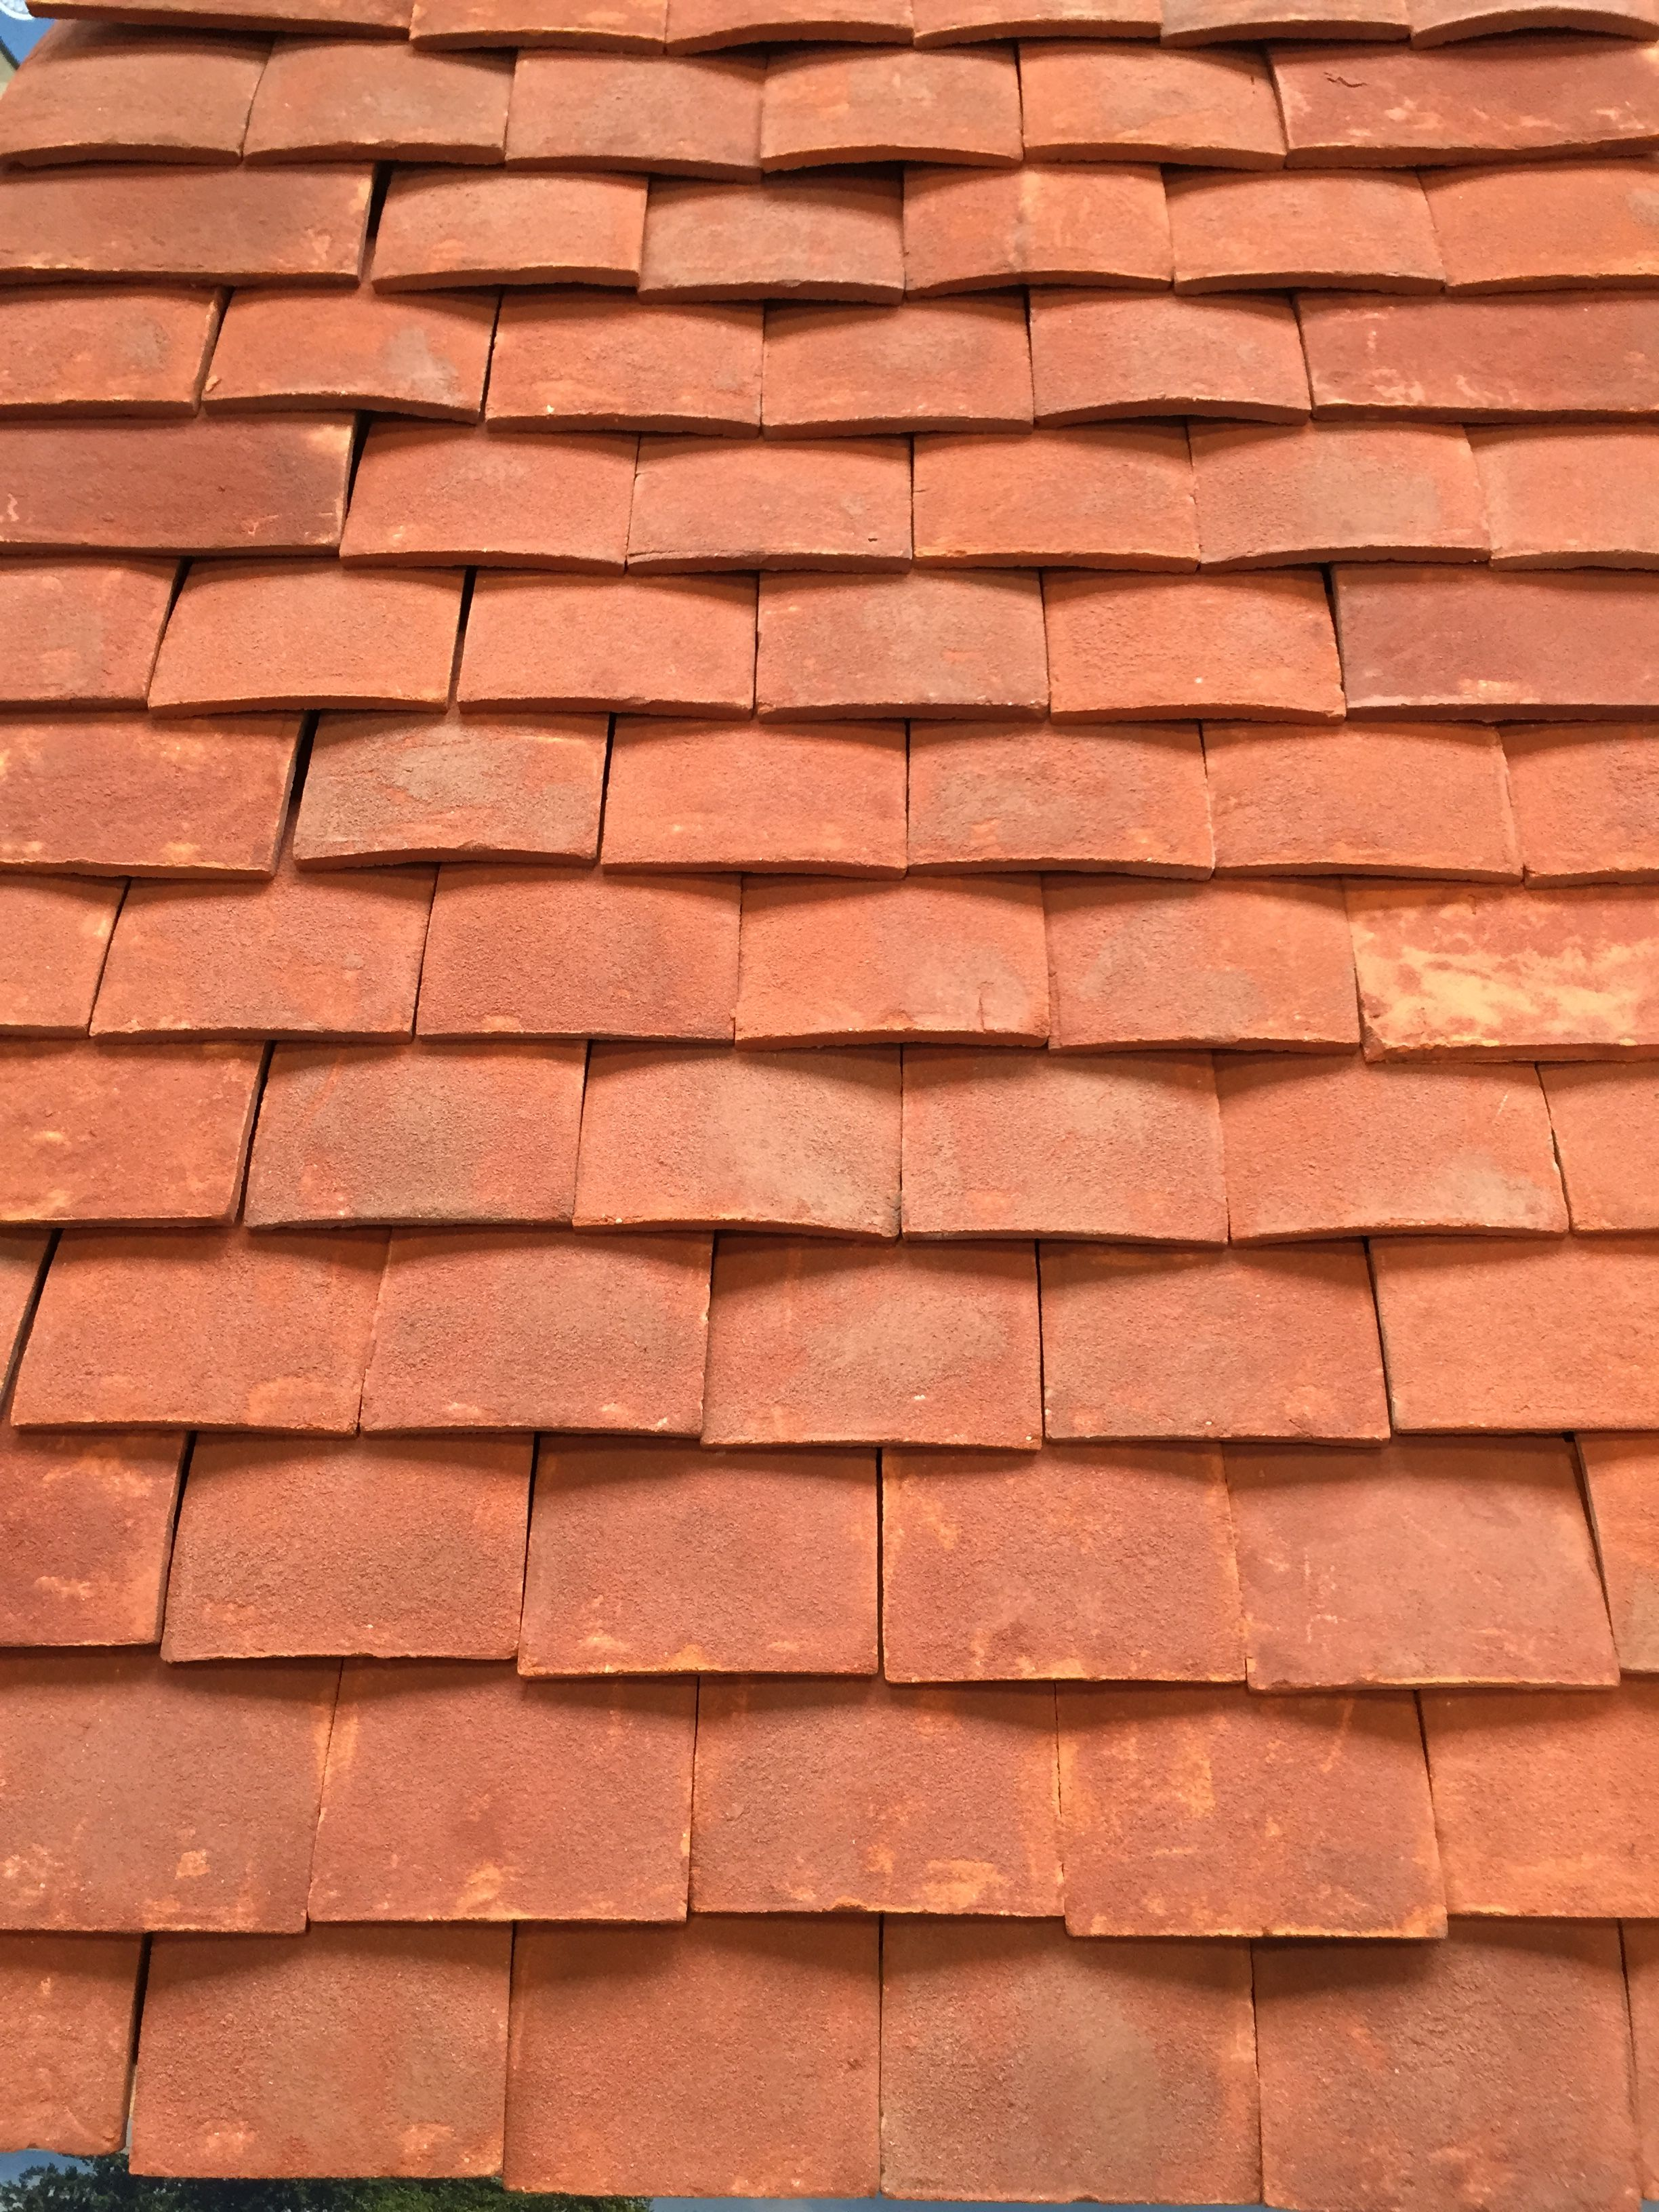 Red Blend Clay Roof Tiles Roofing Supplies Clay Tiles